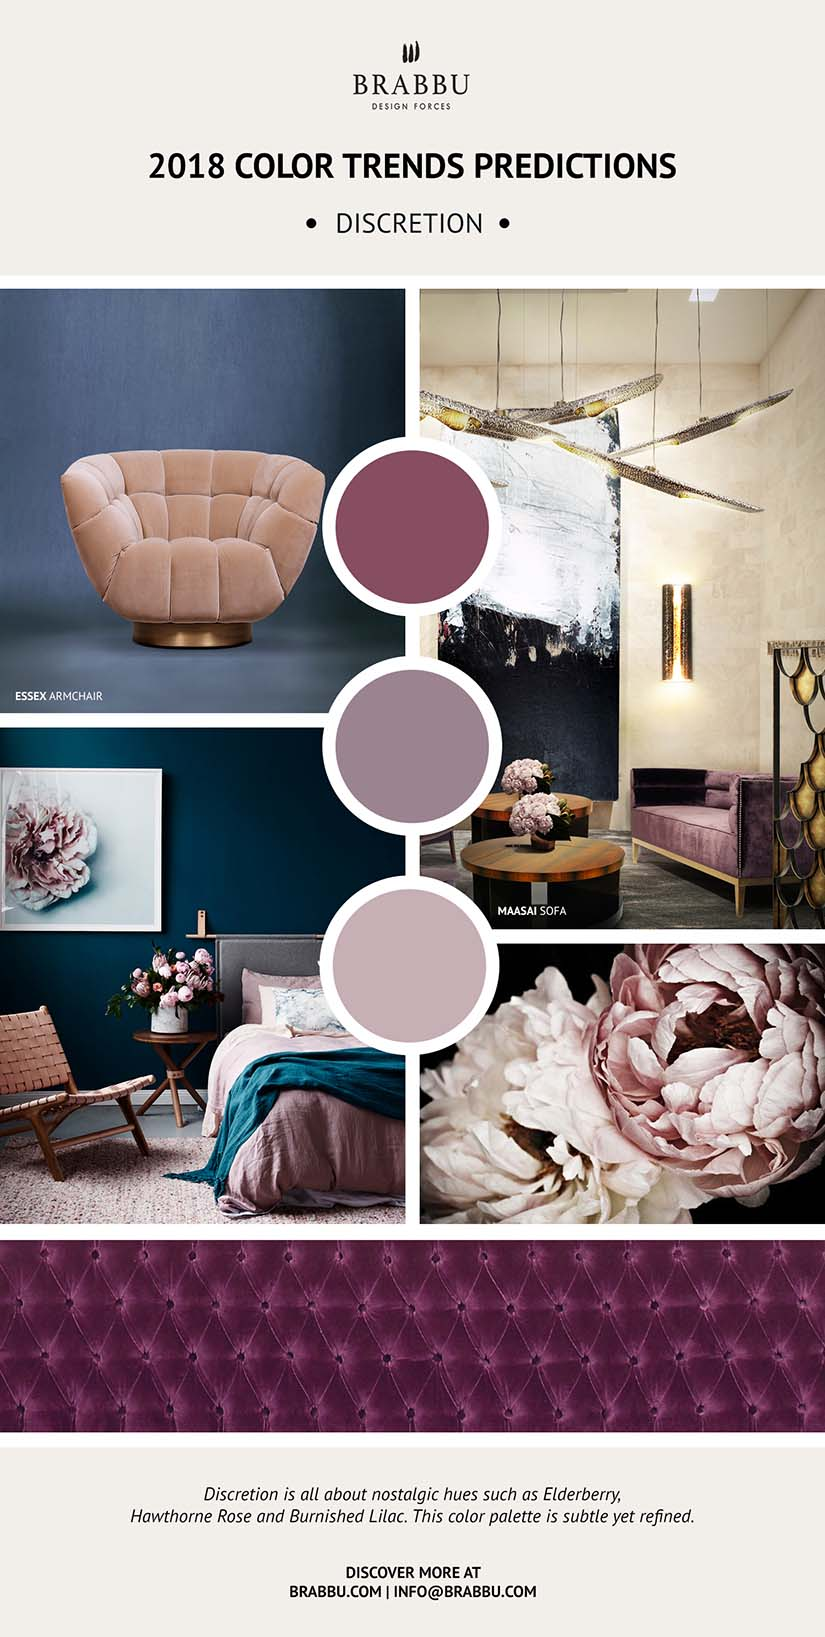 These Pantone Color Trends Will Spice Up Spring 2018  color trends These Pantone Color Trends Will Spice Up Spring 2018  F3768E399AEFA63C7075349ACE63CDF765D8A1399211912B7E pimgpsh fullsize distr